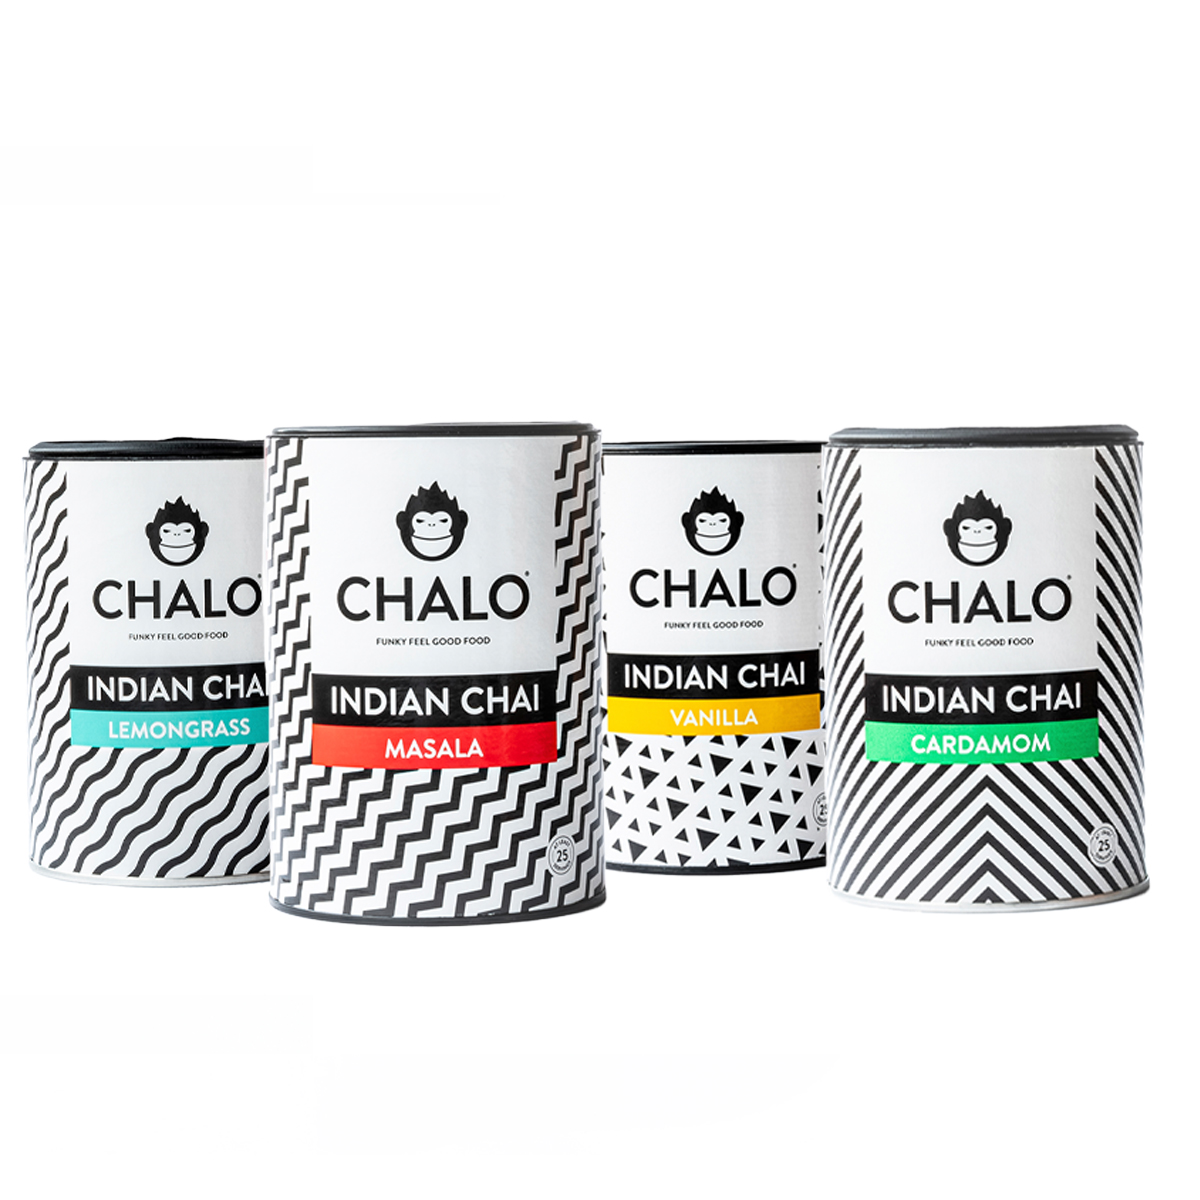 Chai latte starterkit assortment